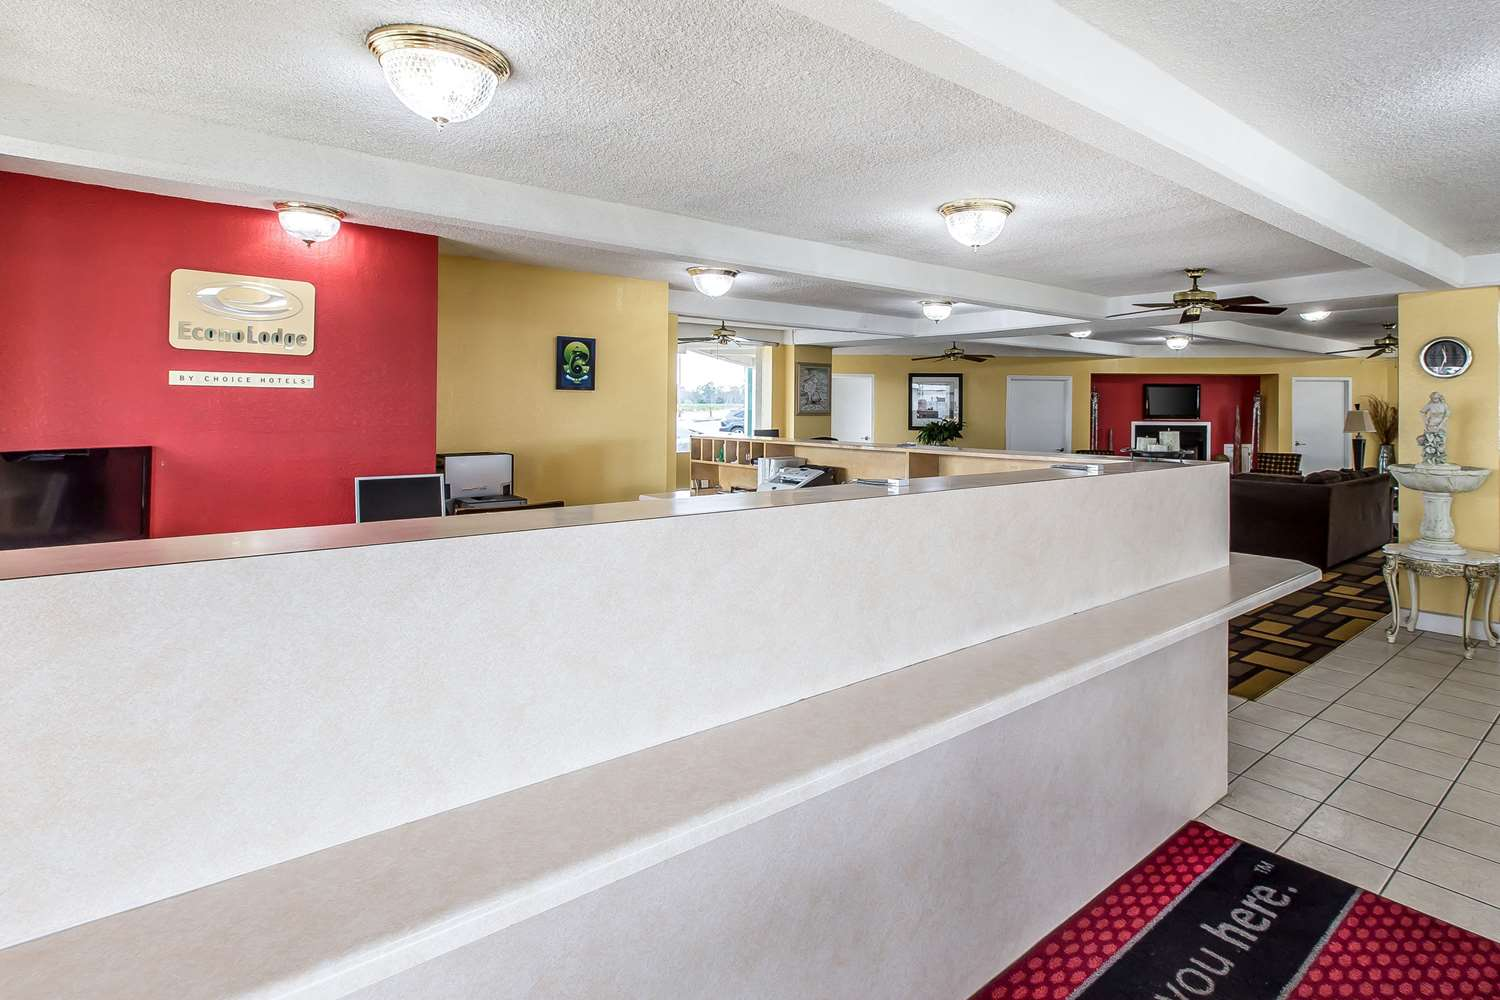 Lobby - Econo Lodge Old Macon Road Byron